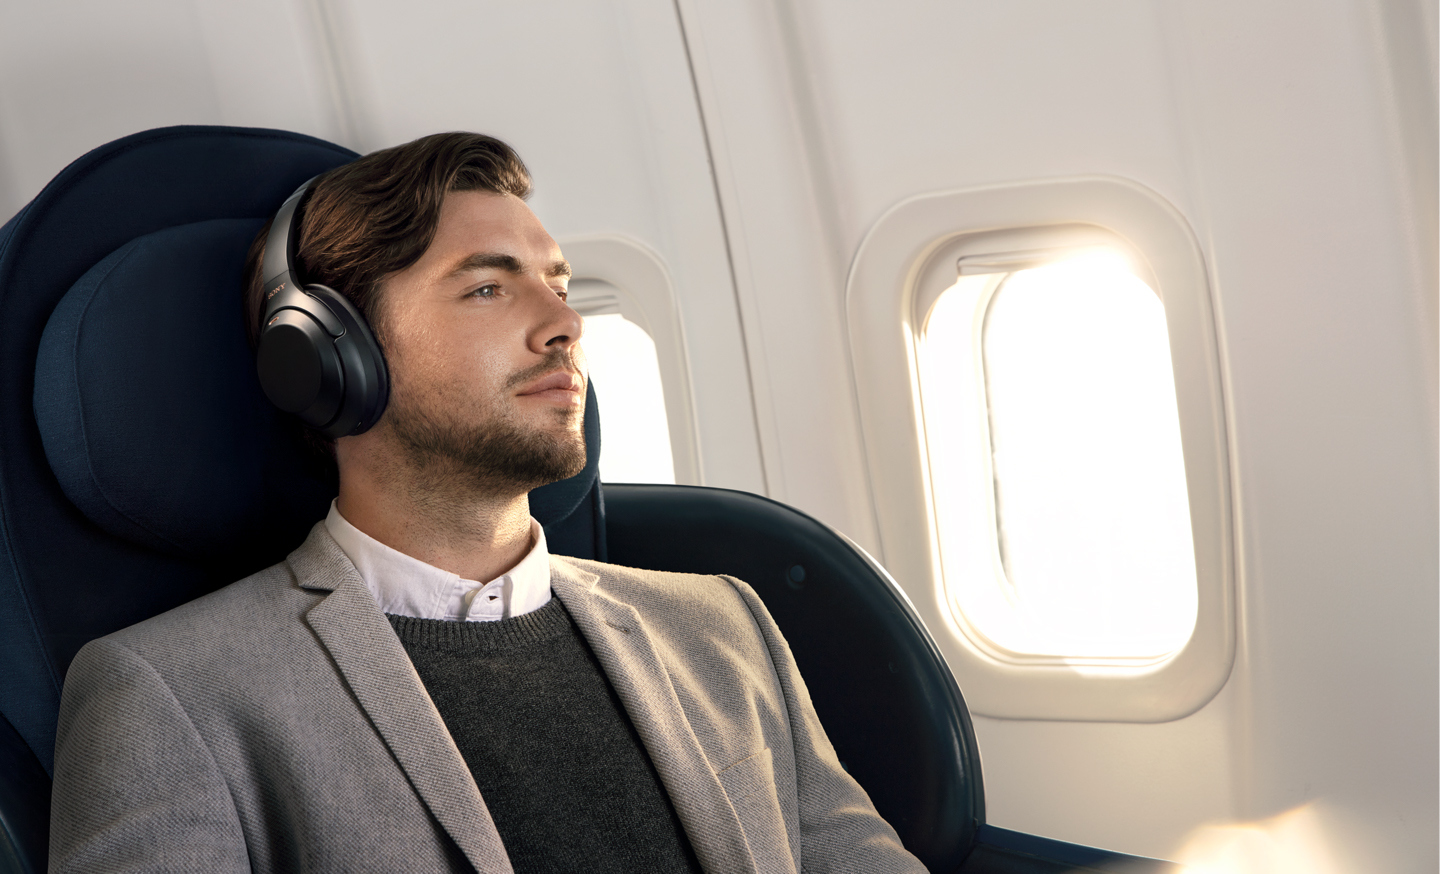 Sony WH1000XM3 noise cancelling headphone refurbs are back down the lowest price of 2019